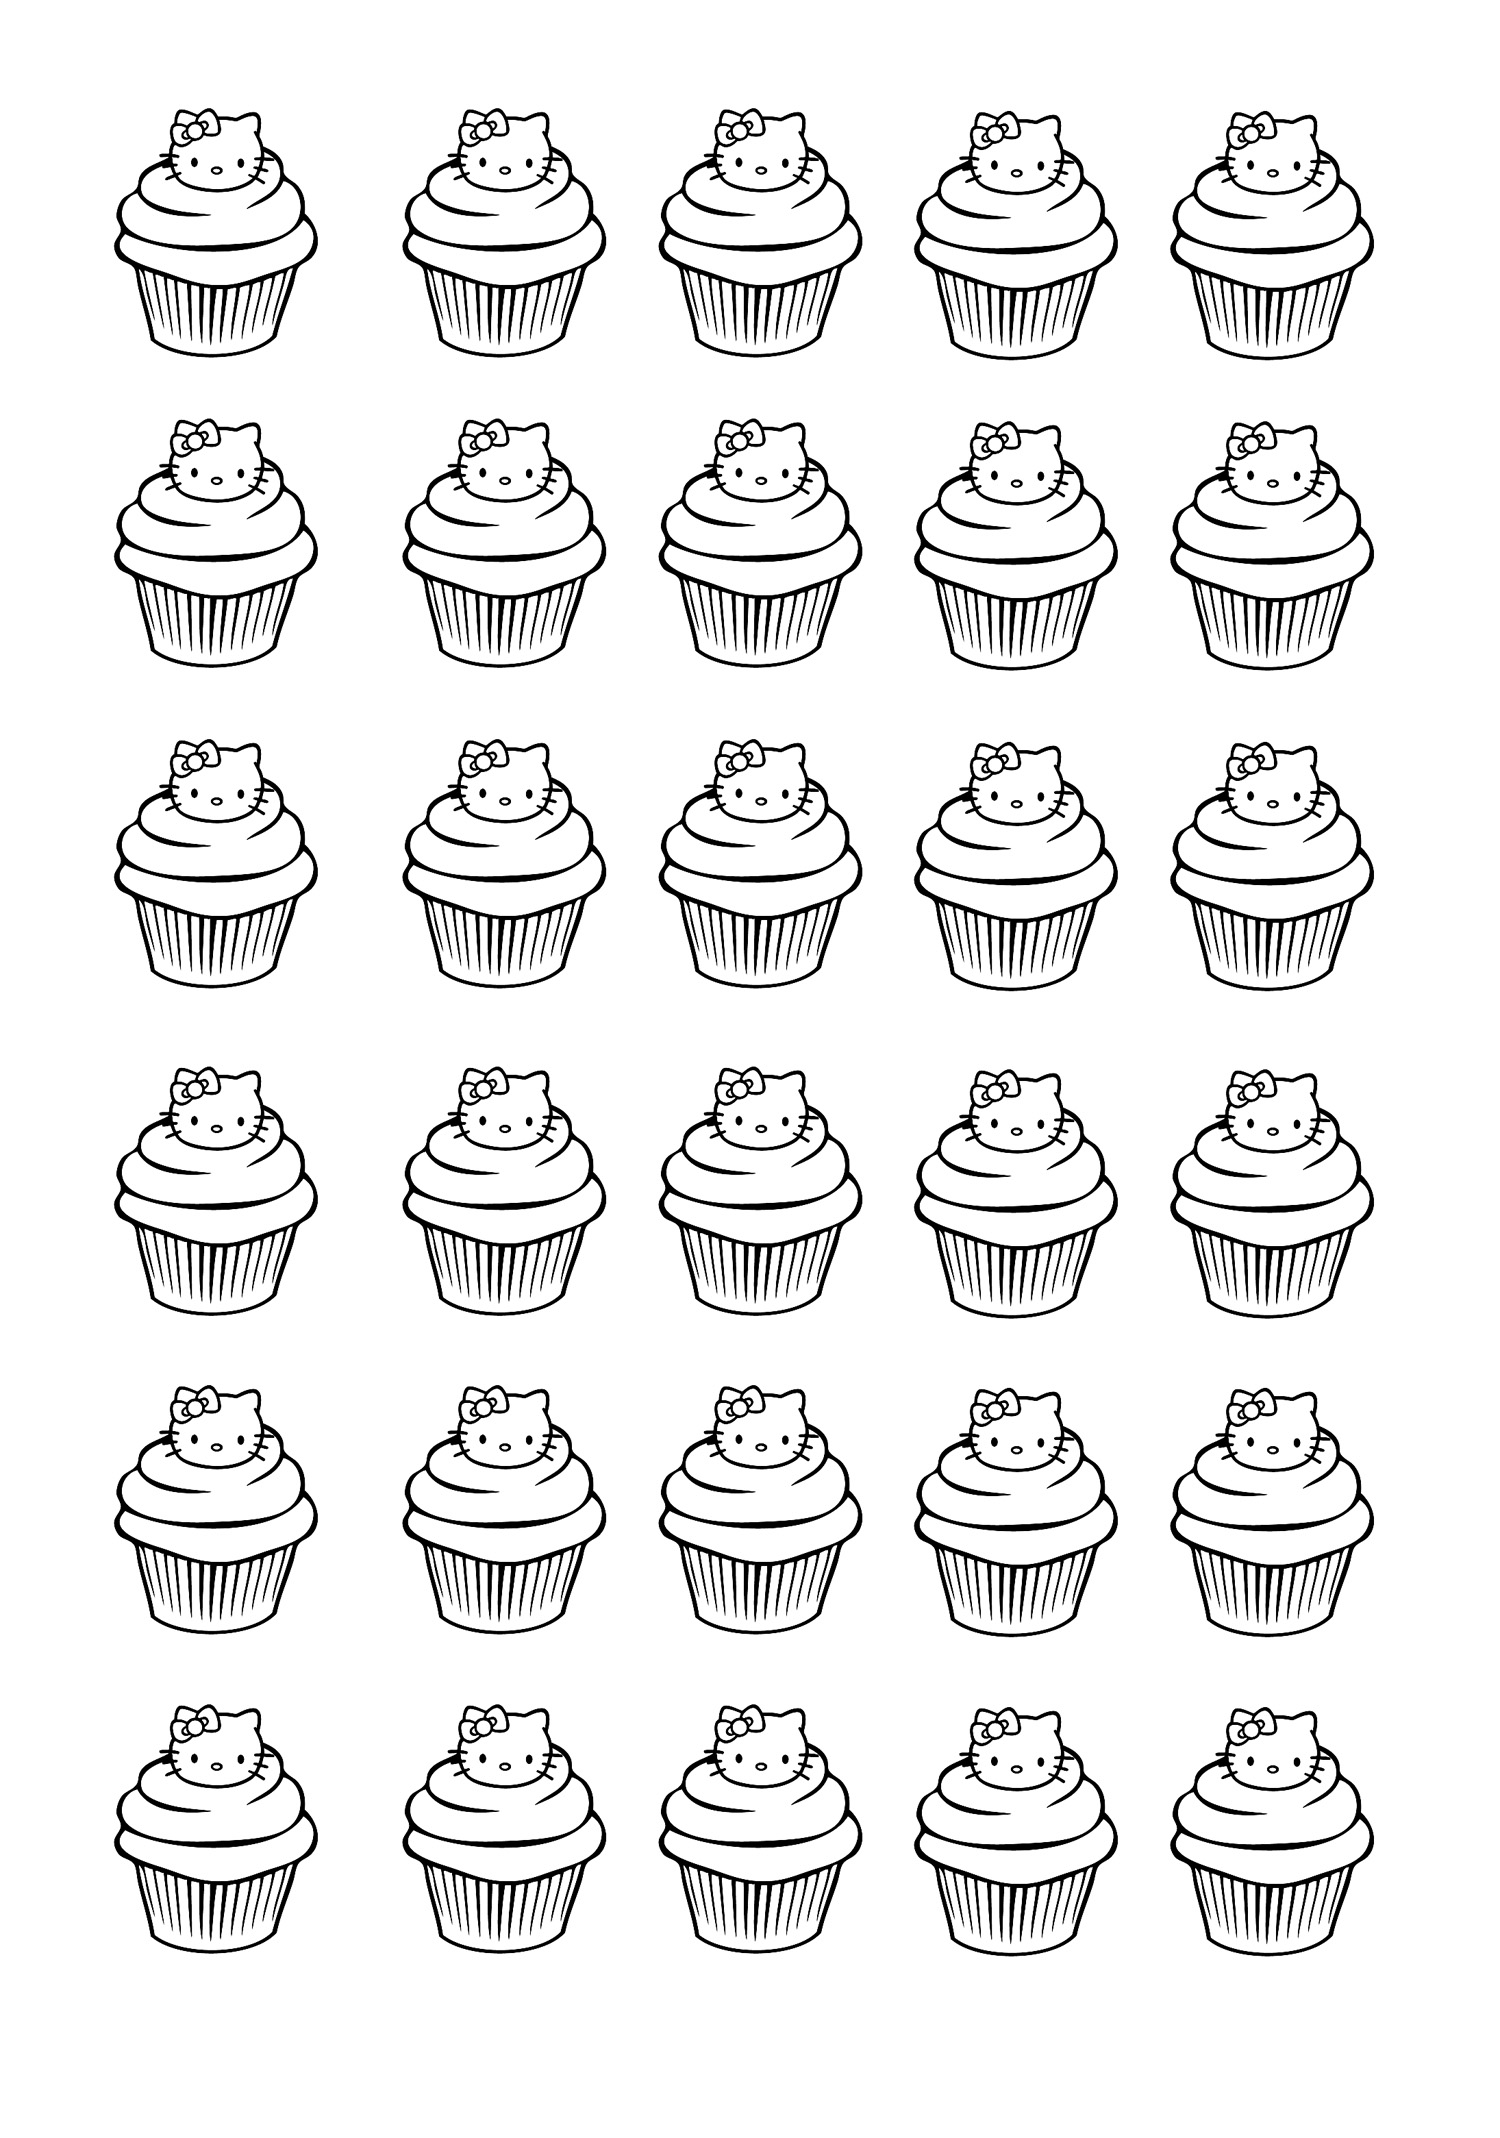 cupcakes hello kitty cupcakes adult coloring pages